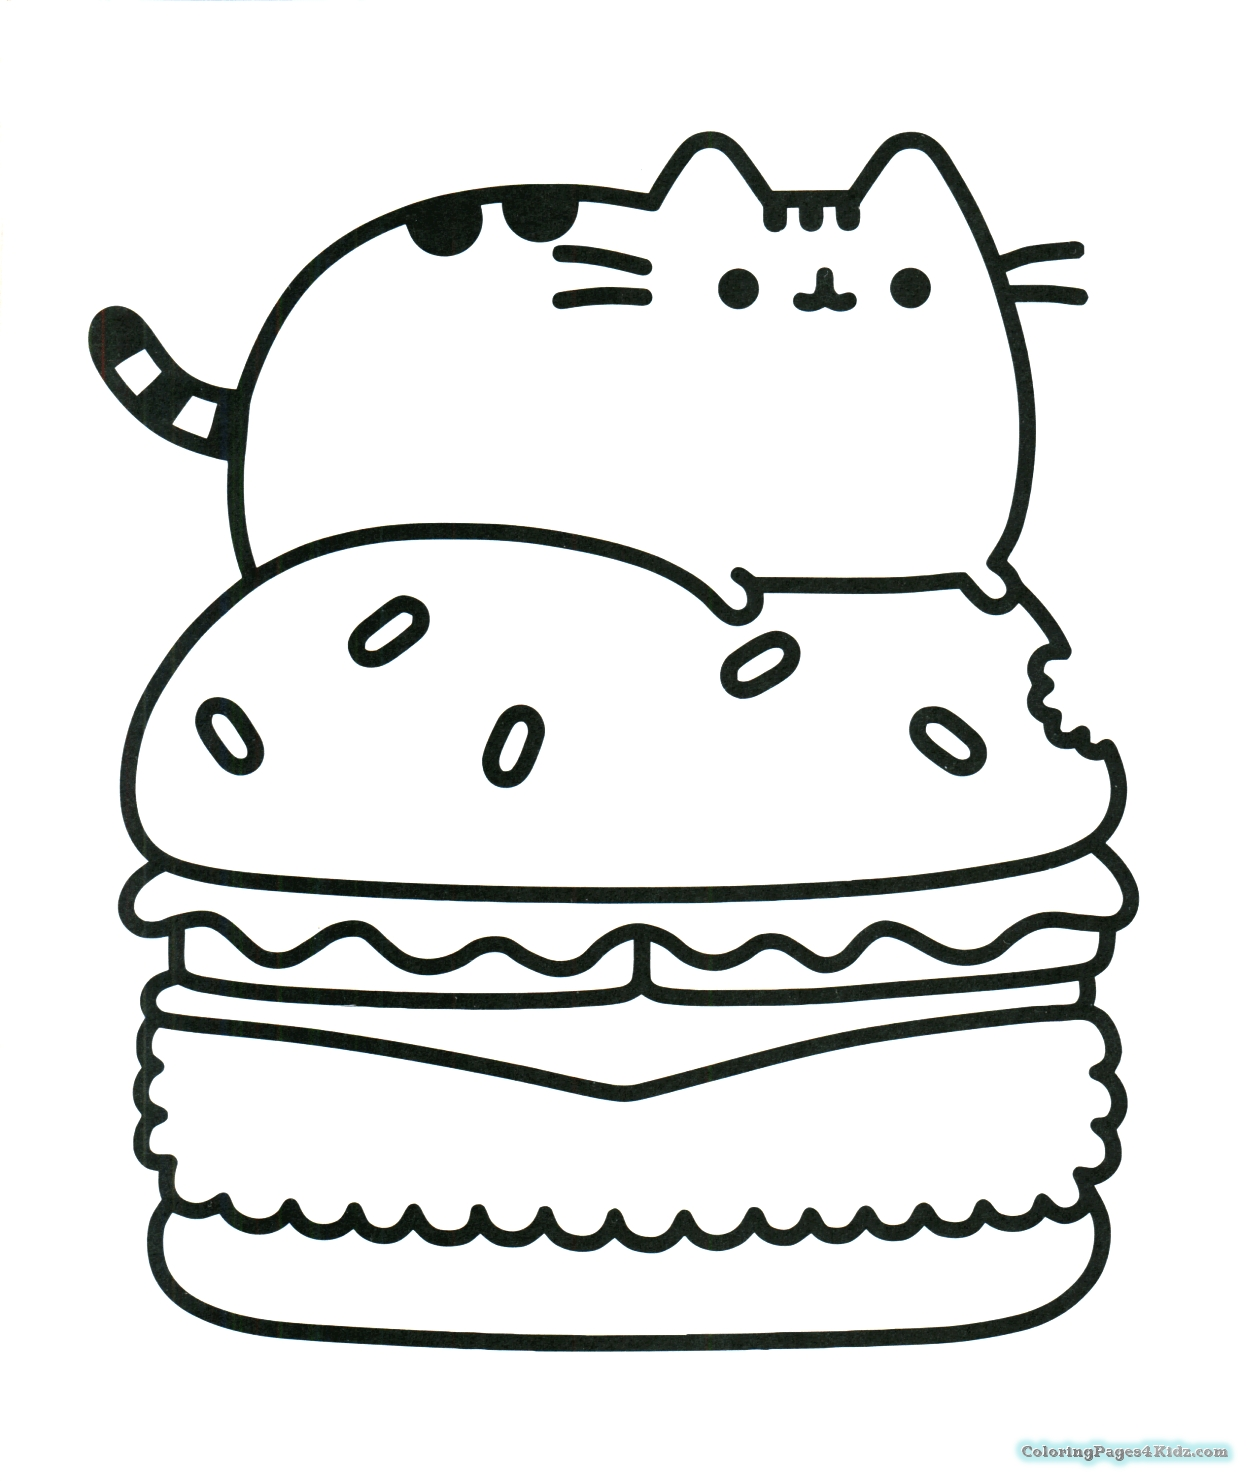 Pusheen Unicorn Coloring Pages At Getdrawings Com Free For